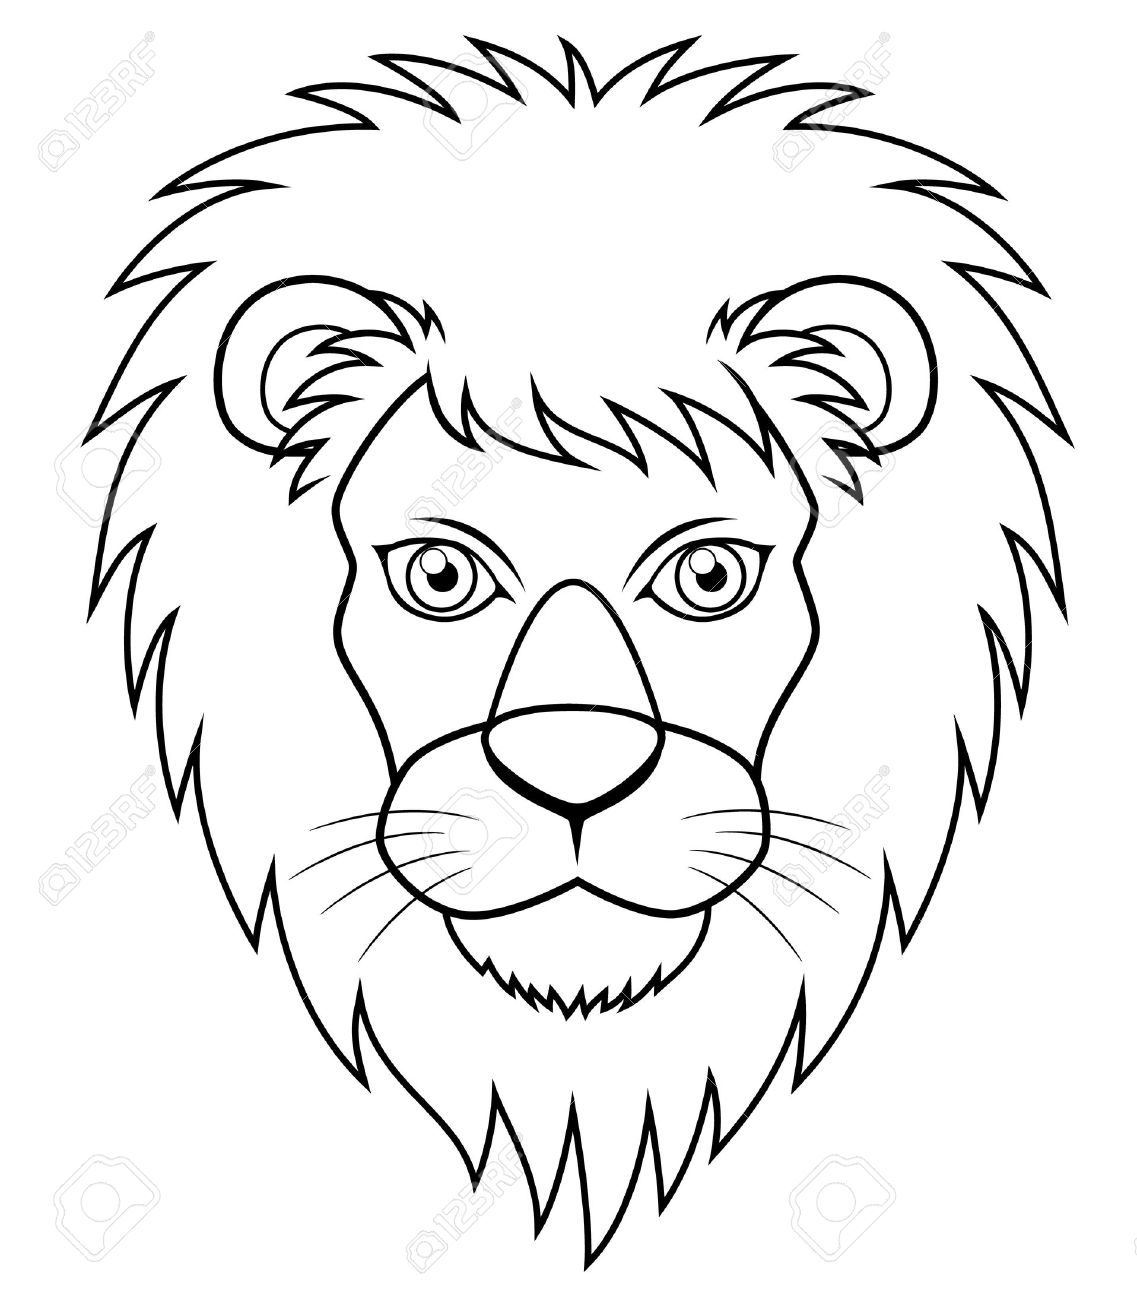 Drawing A Lion Face Step By Step At Getdrawings Com Free For